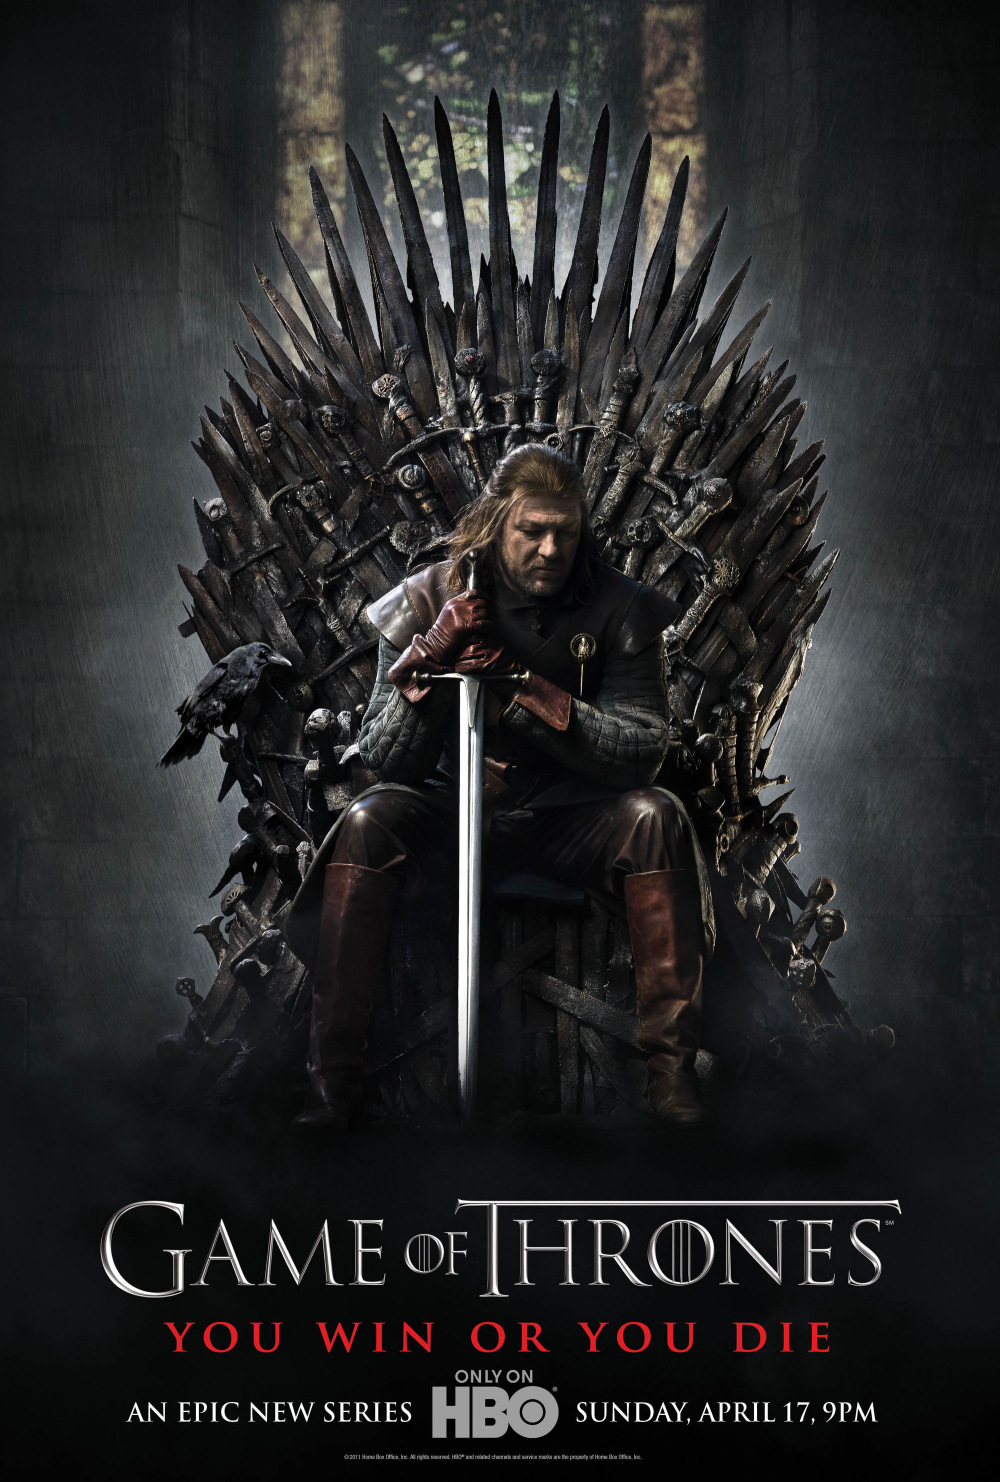 game of thrones s07e06 1080p web x265 english subtitles